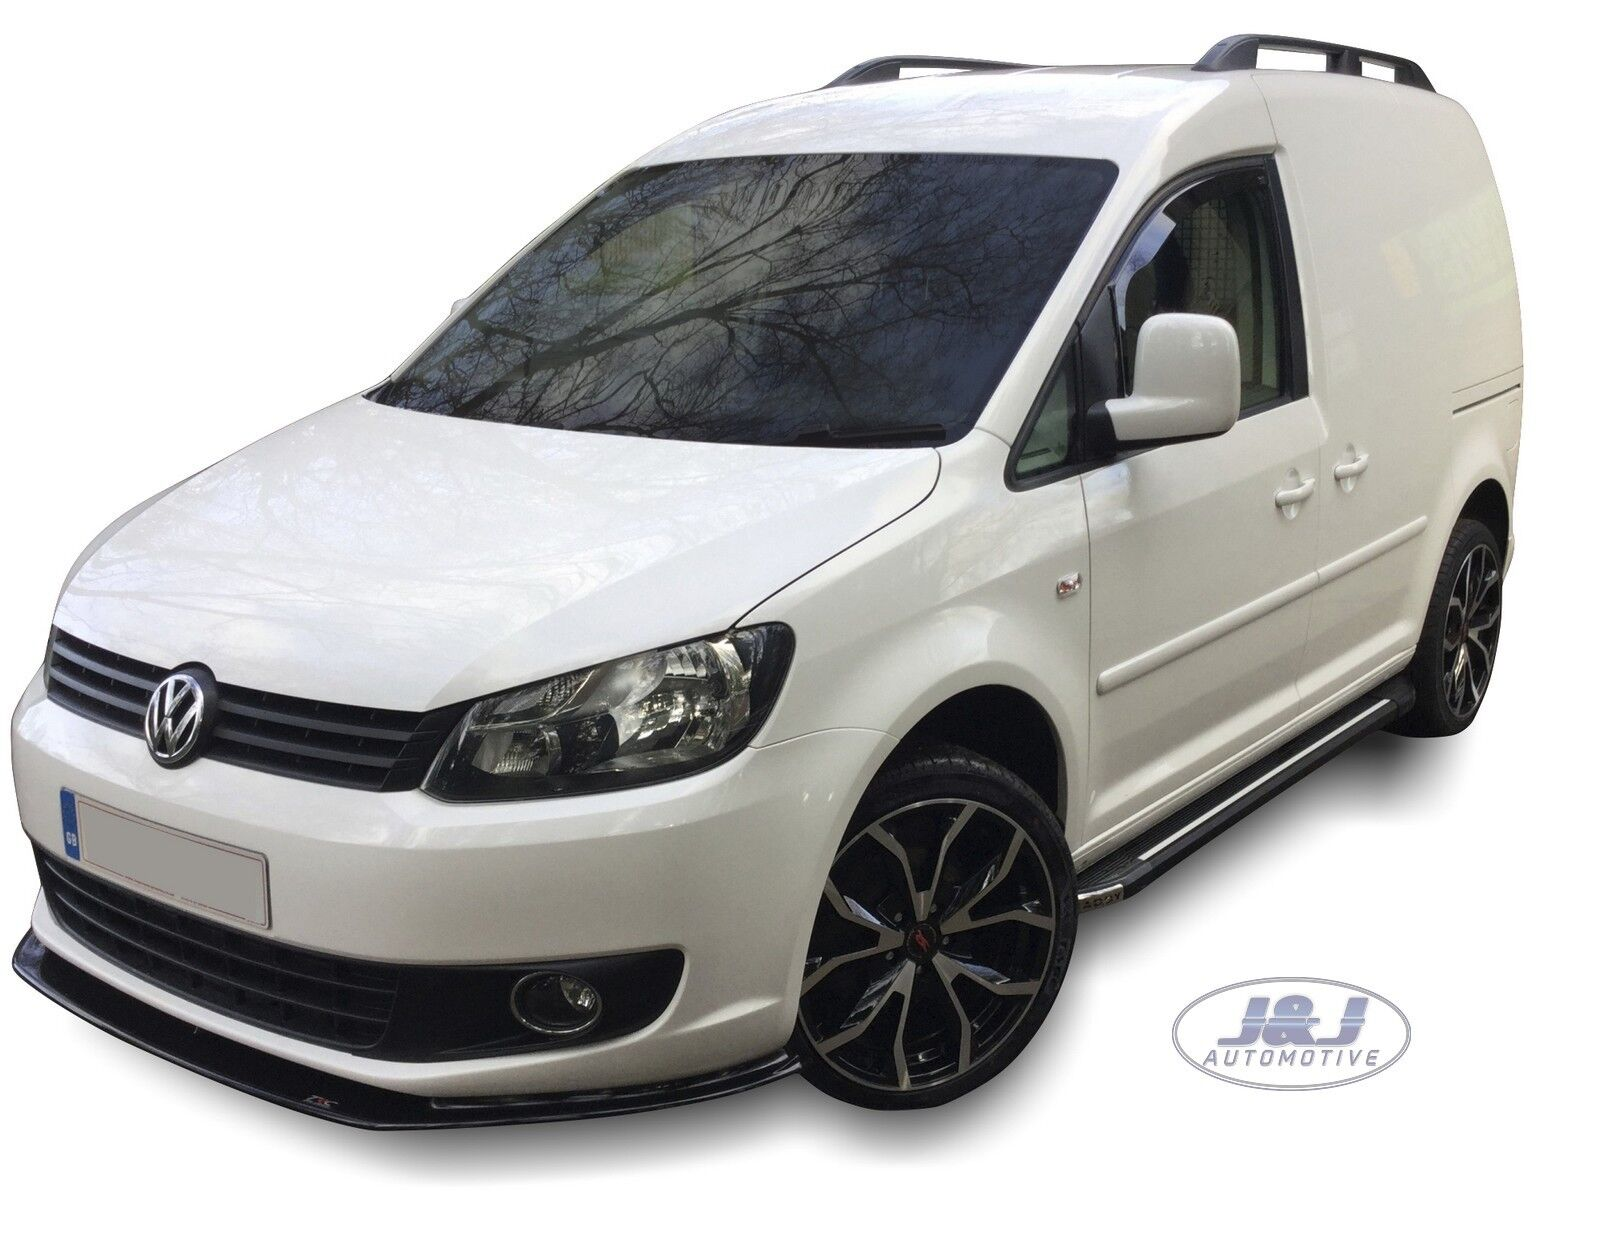 Details about VW Caddy 2004-2015 Front Wind Deflectors 2pc Set Internal Fit  TINTED HEKO